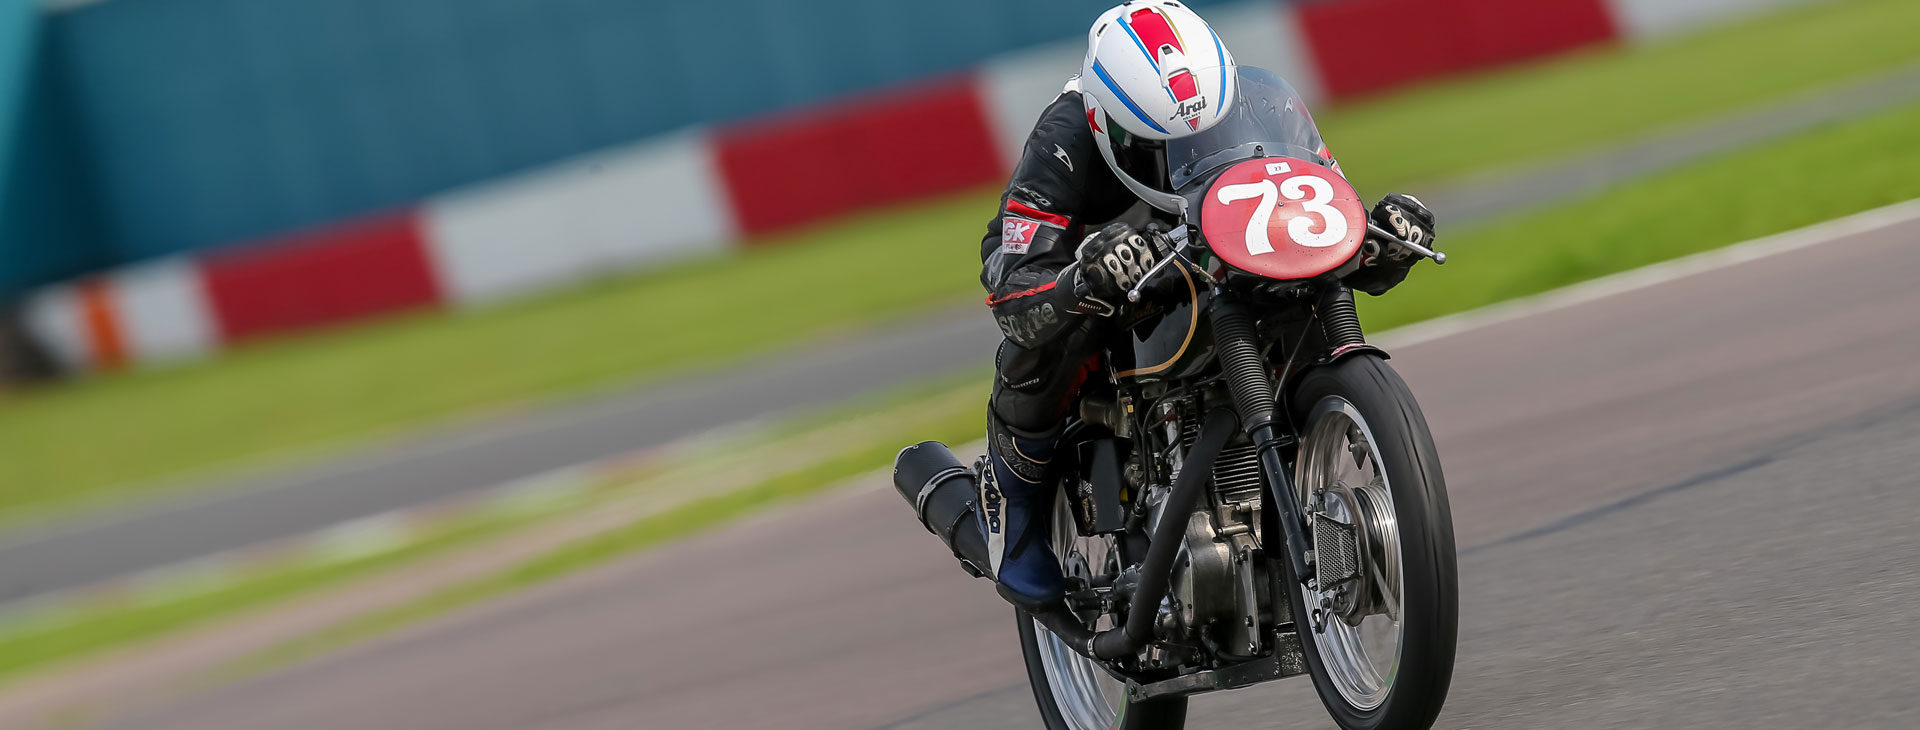 Steve Pond racing the Geartech Midlands Velocette in the Lansdowne Classic Series